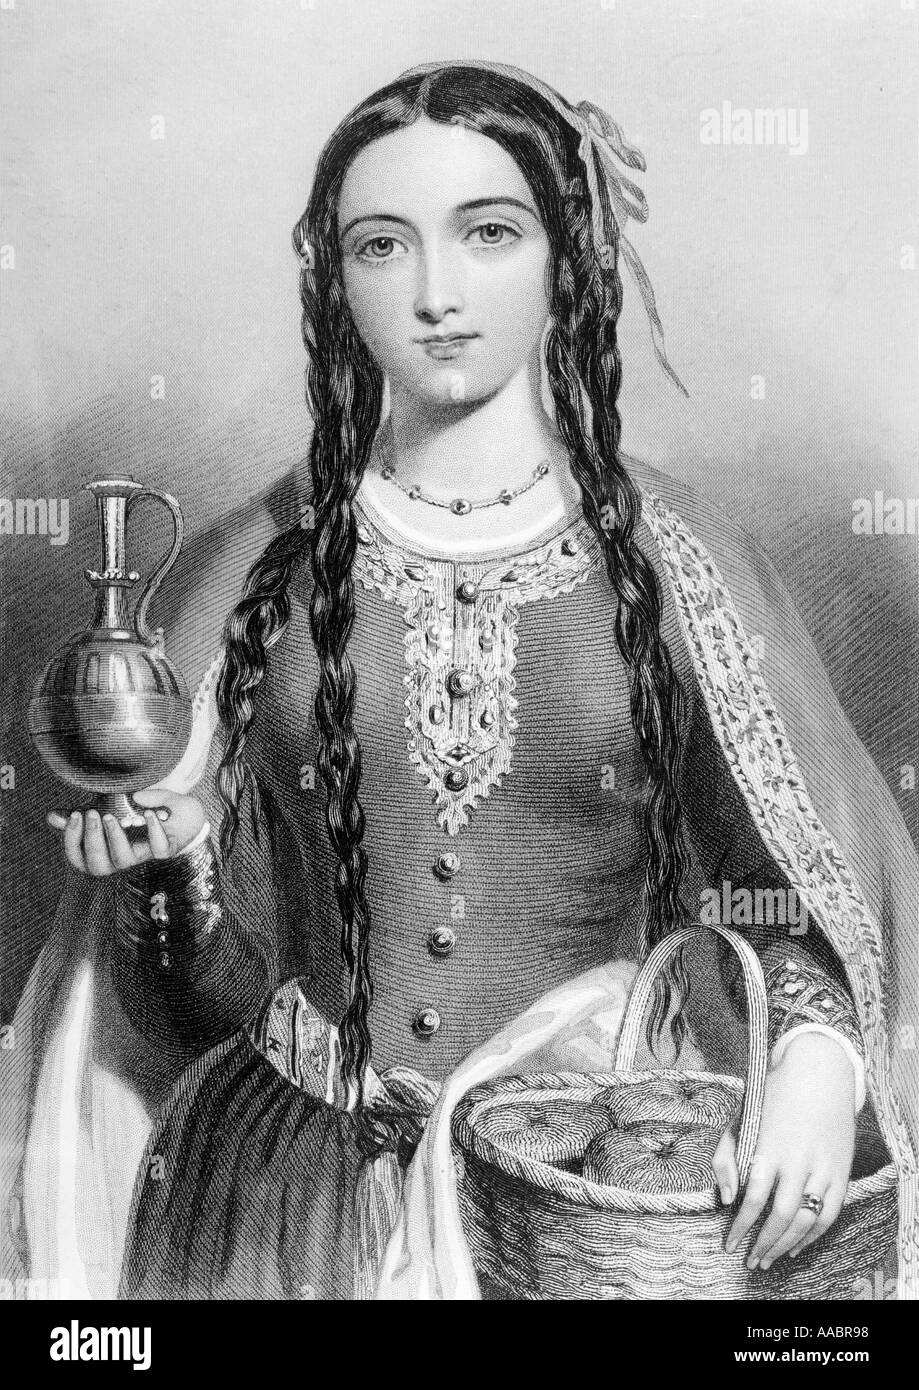 Matilda of Scotland, aka Edith c 1079/80 - 1118.  Queen of Henry I of England. Stock Photo